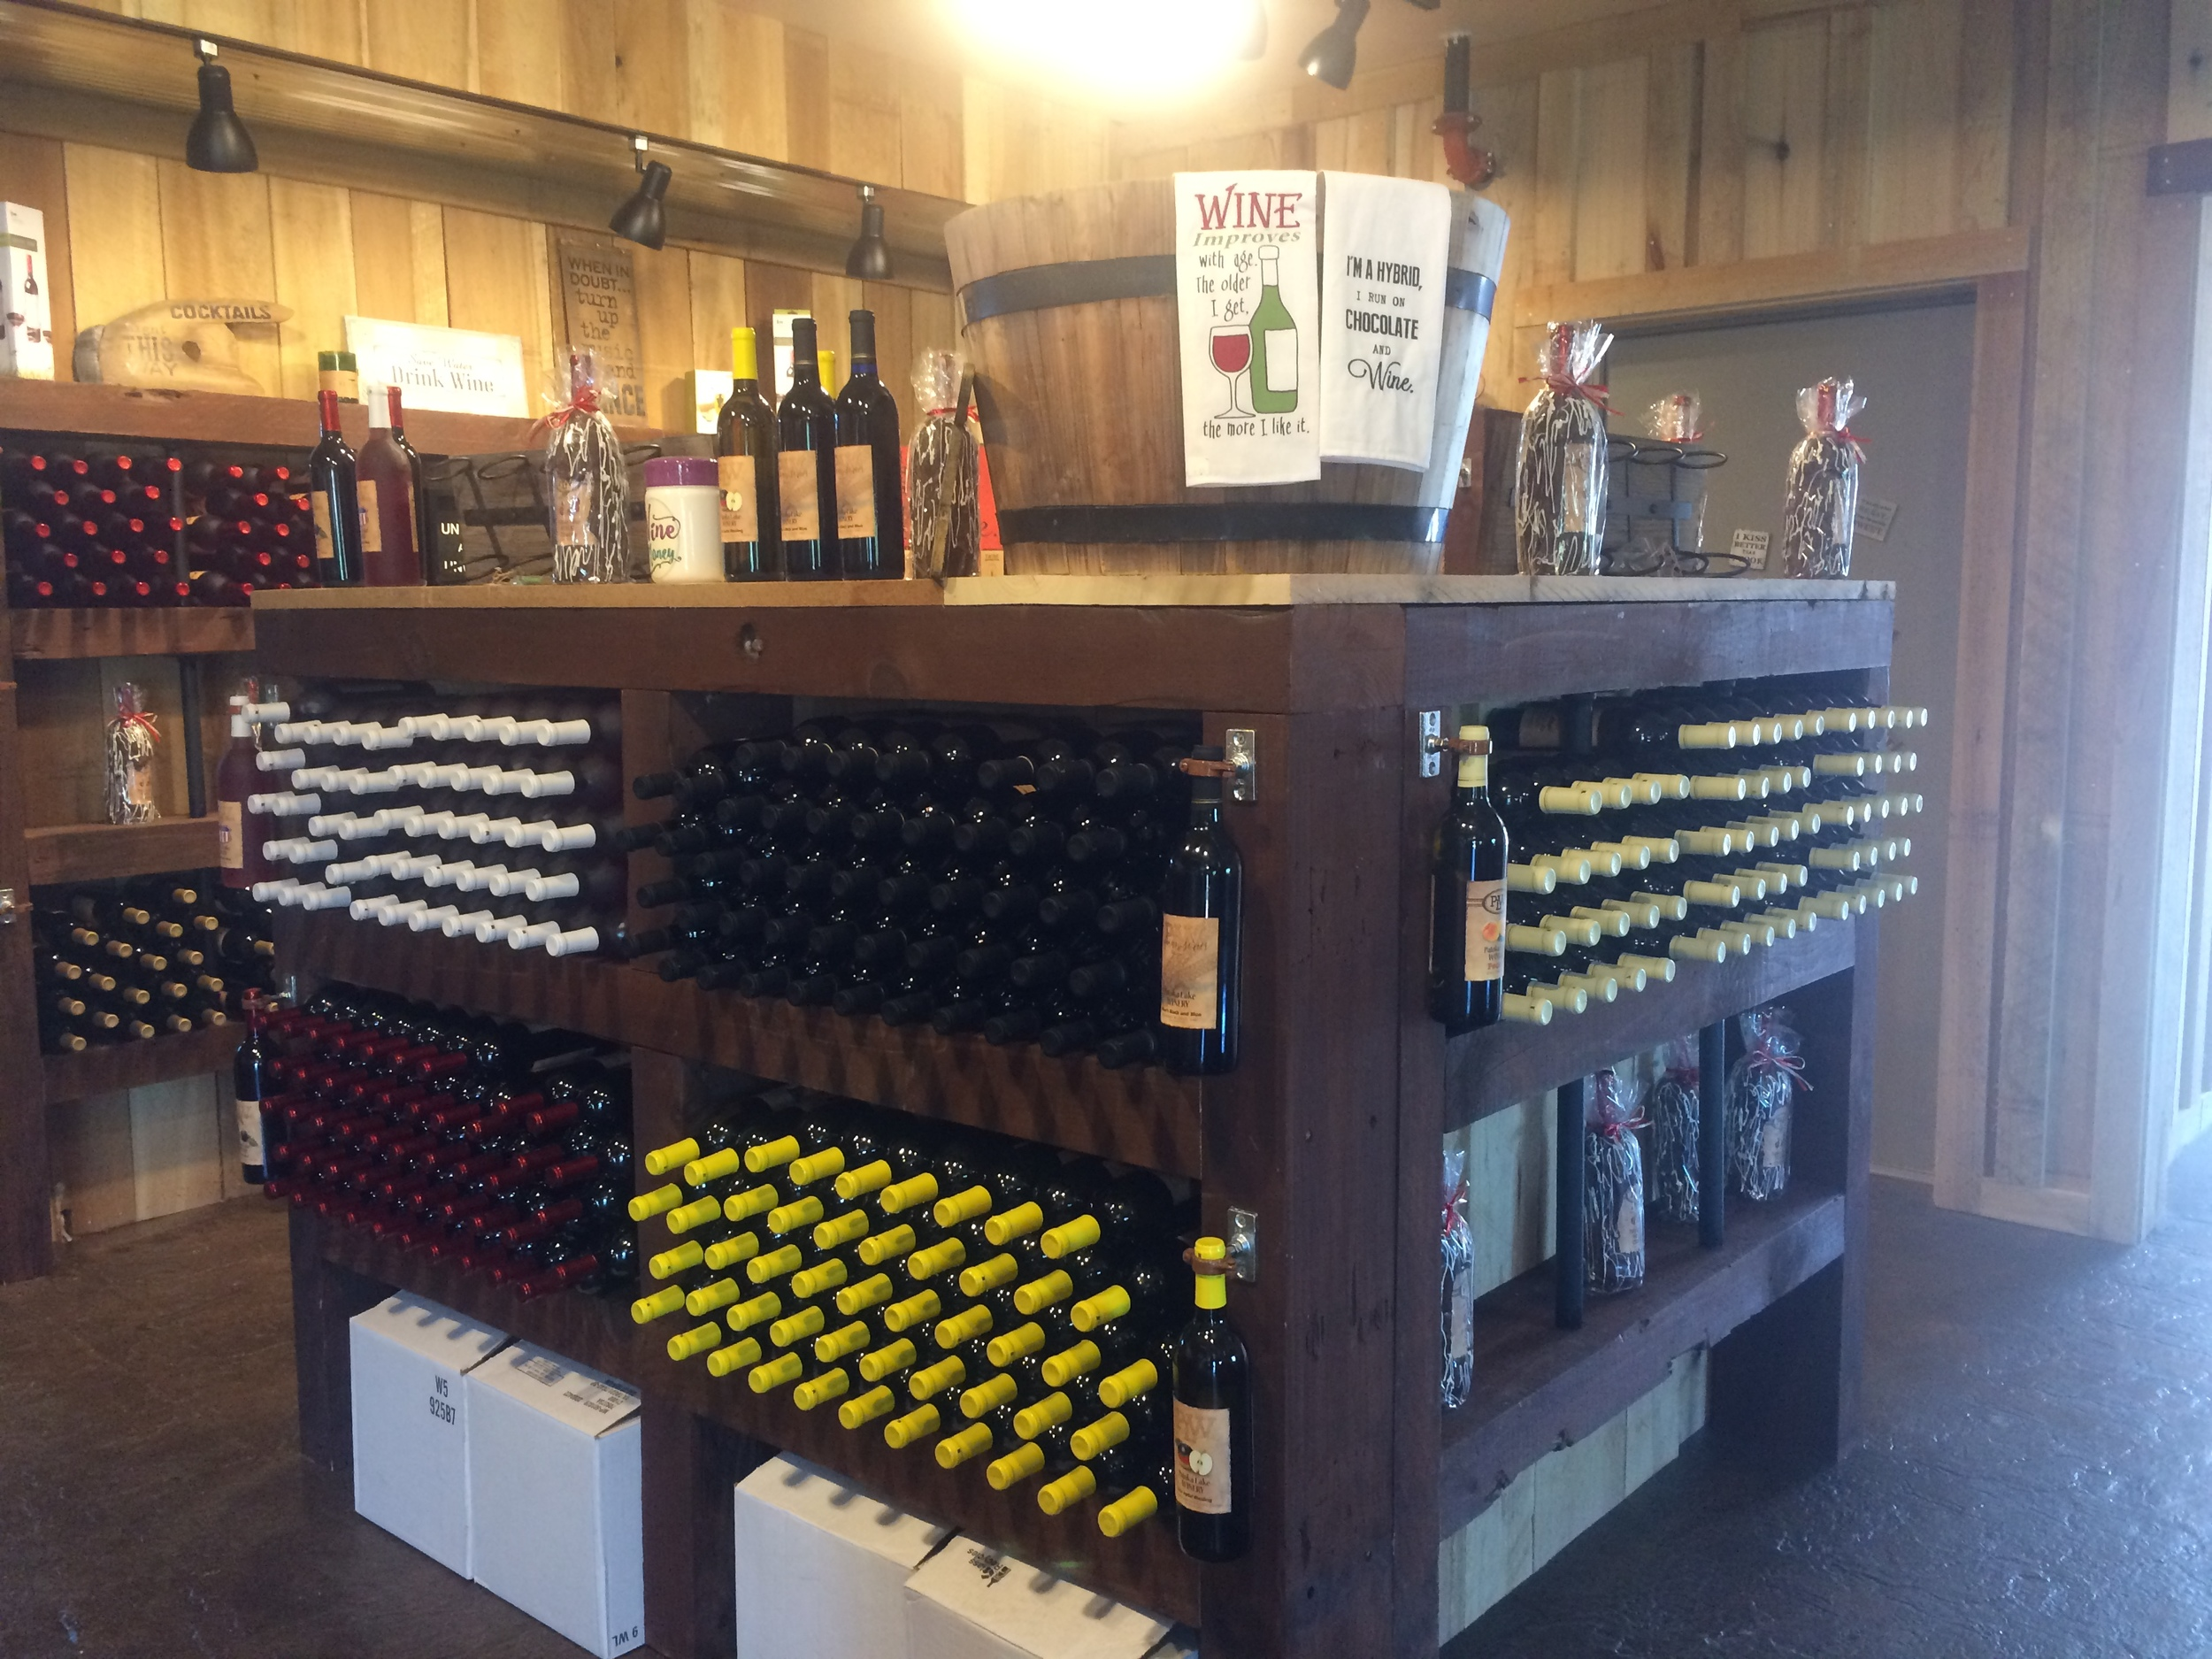 Bottled wines for sale